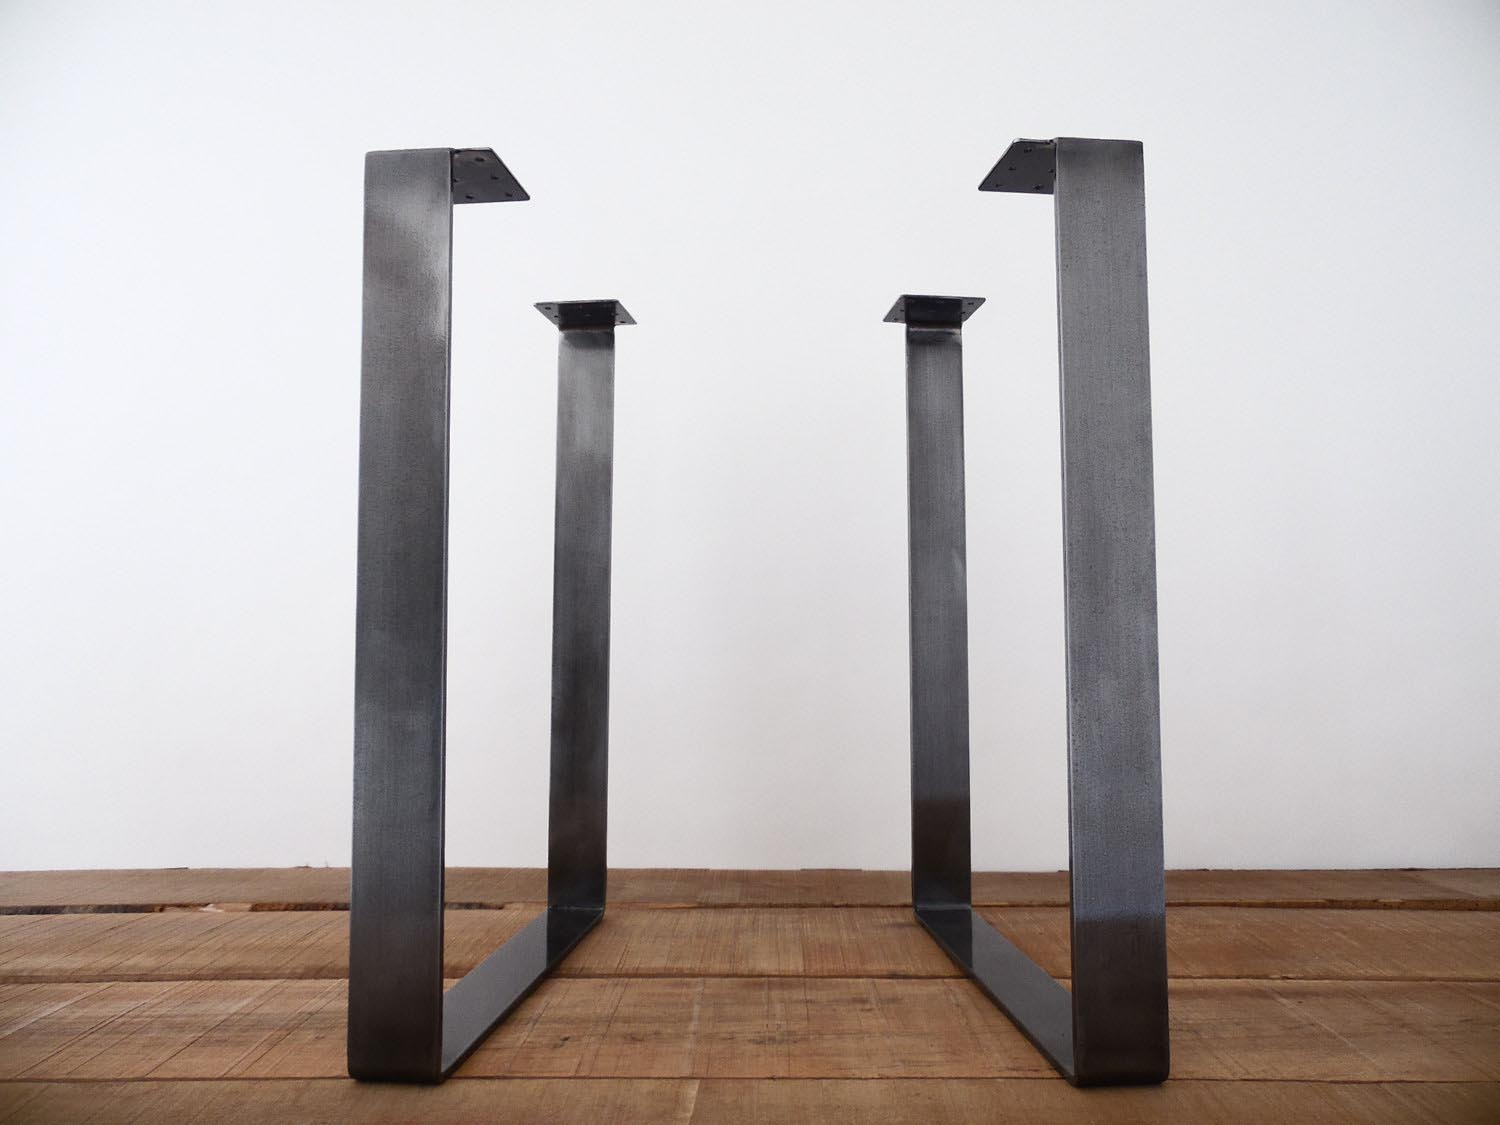 Square Metal Furniture Legs